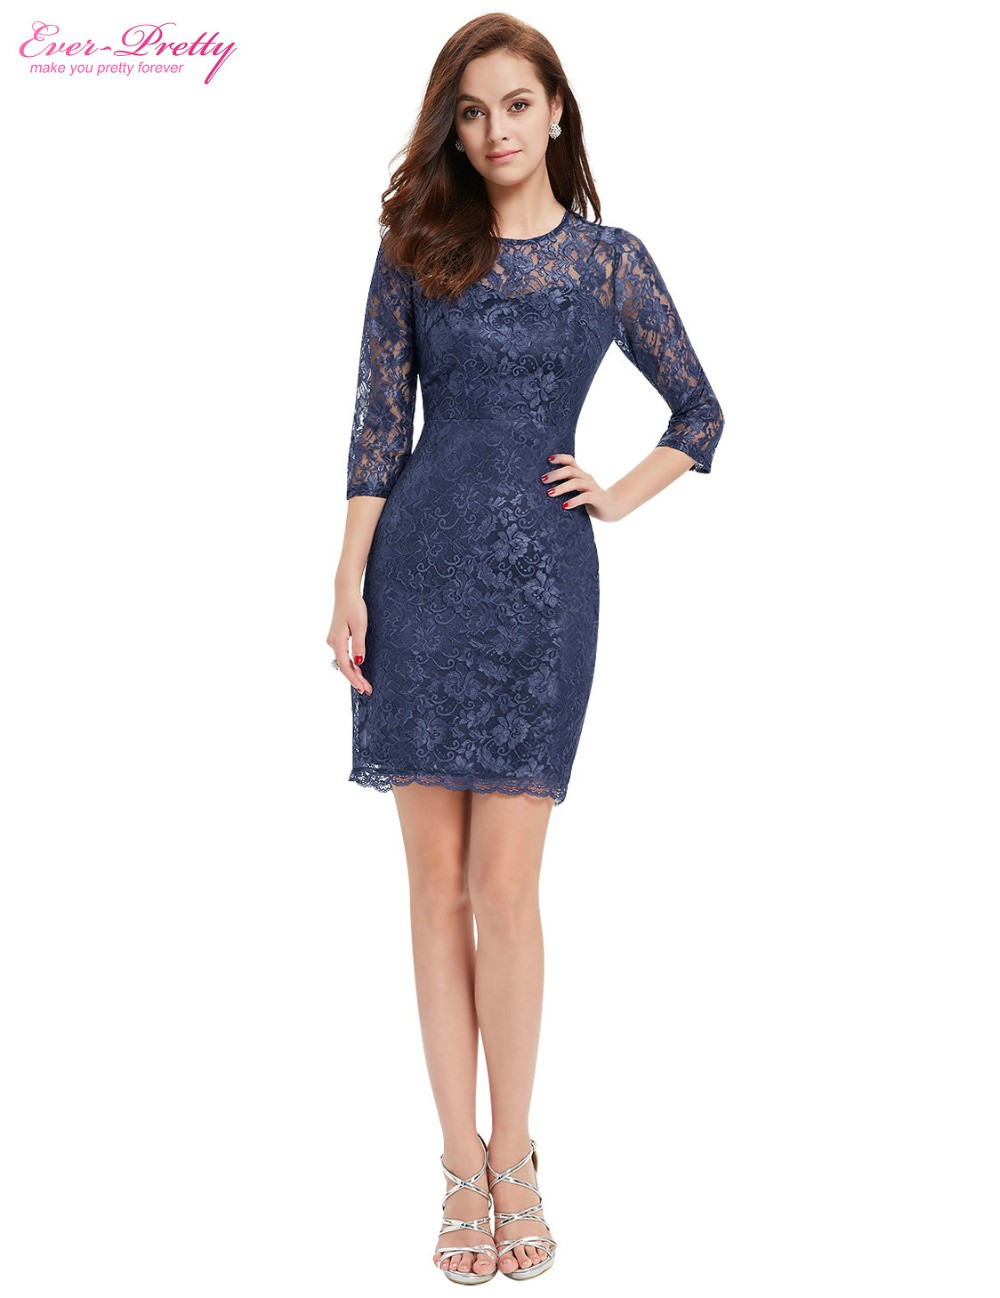 c59b88e3a1b89 Cocktail Dress HE03792BL Women 3/4 Sleeve Ever Pretty Slim Fit Elegant Lace  Summer Style Cocktail Dress-in Cocktail Dresses from Weddings & Events